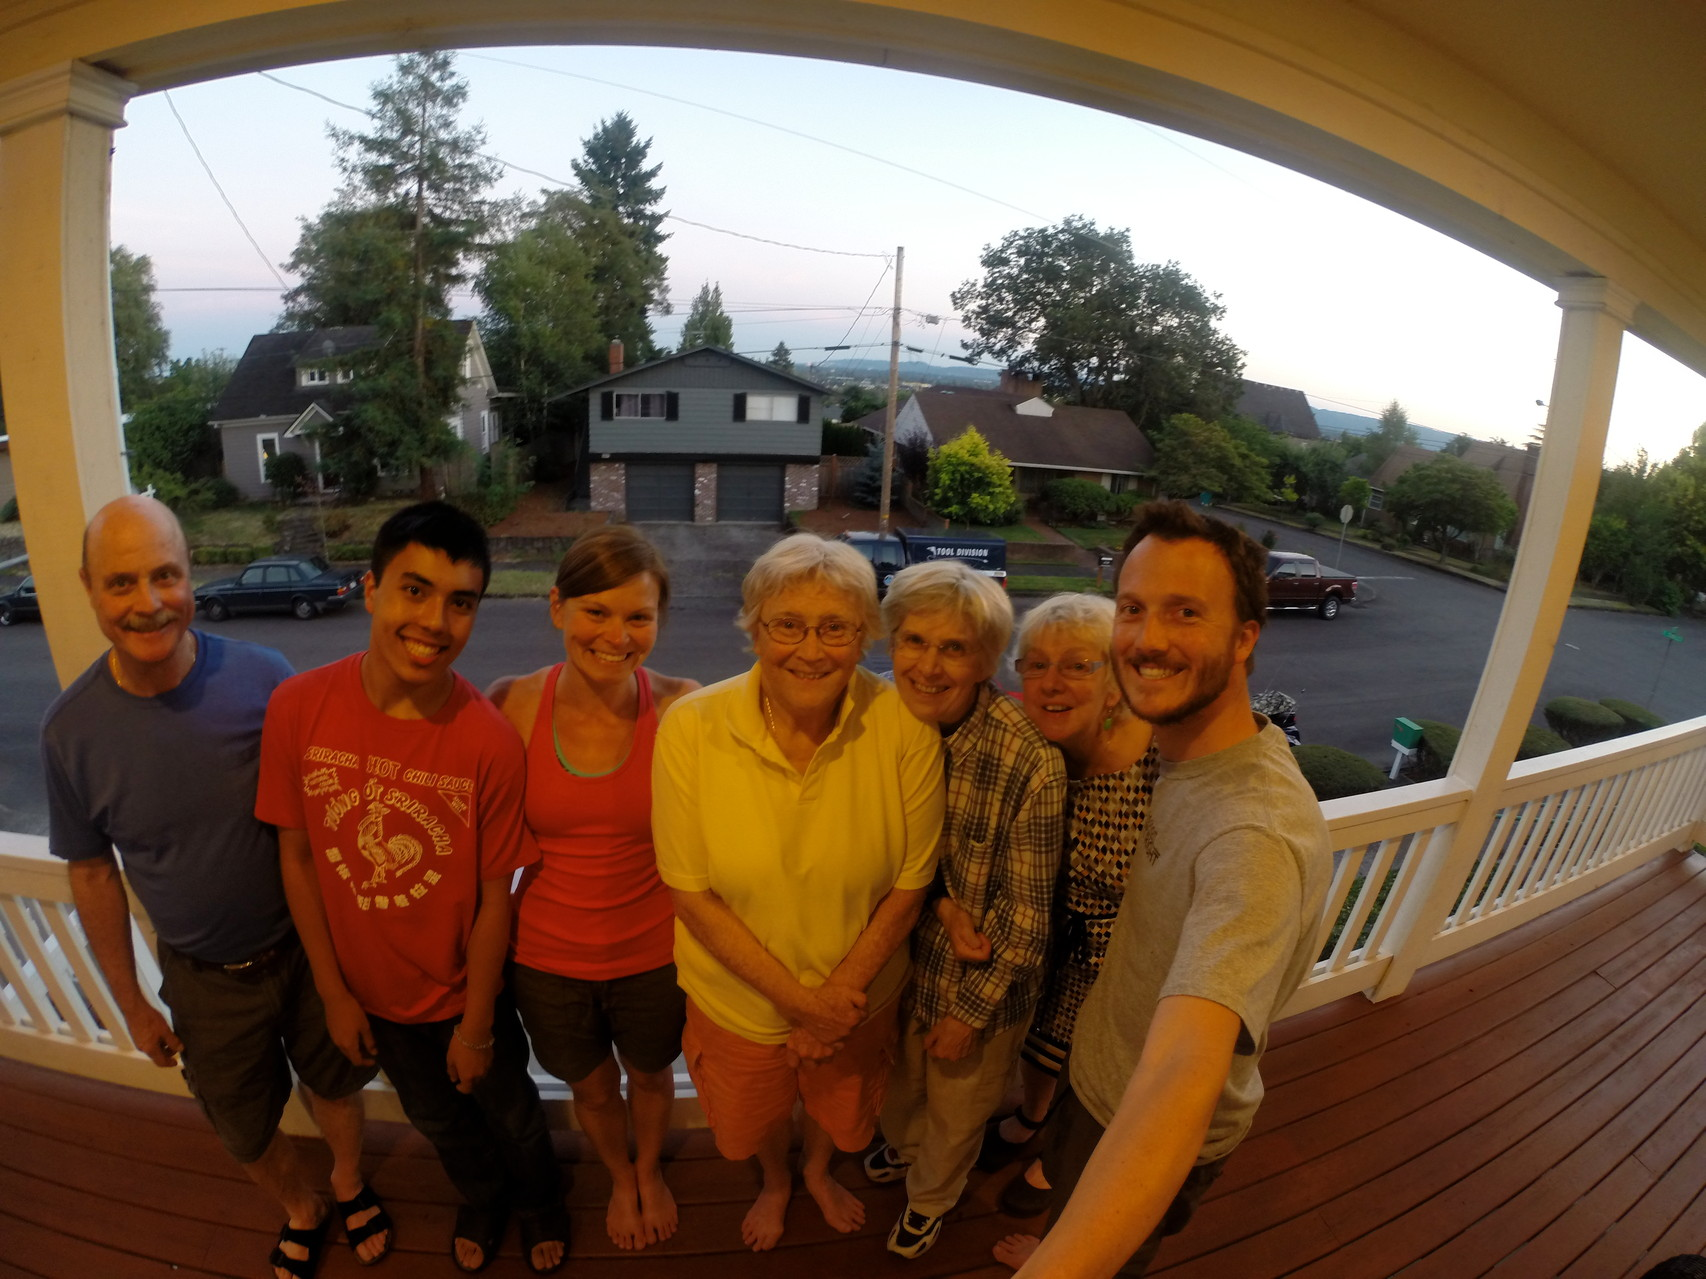 A bit further south in Vancouver, WA- Jay's Aunt, Uncle & Cousins